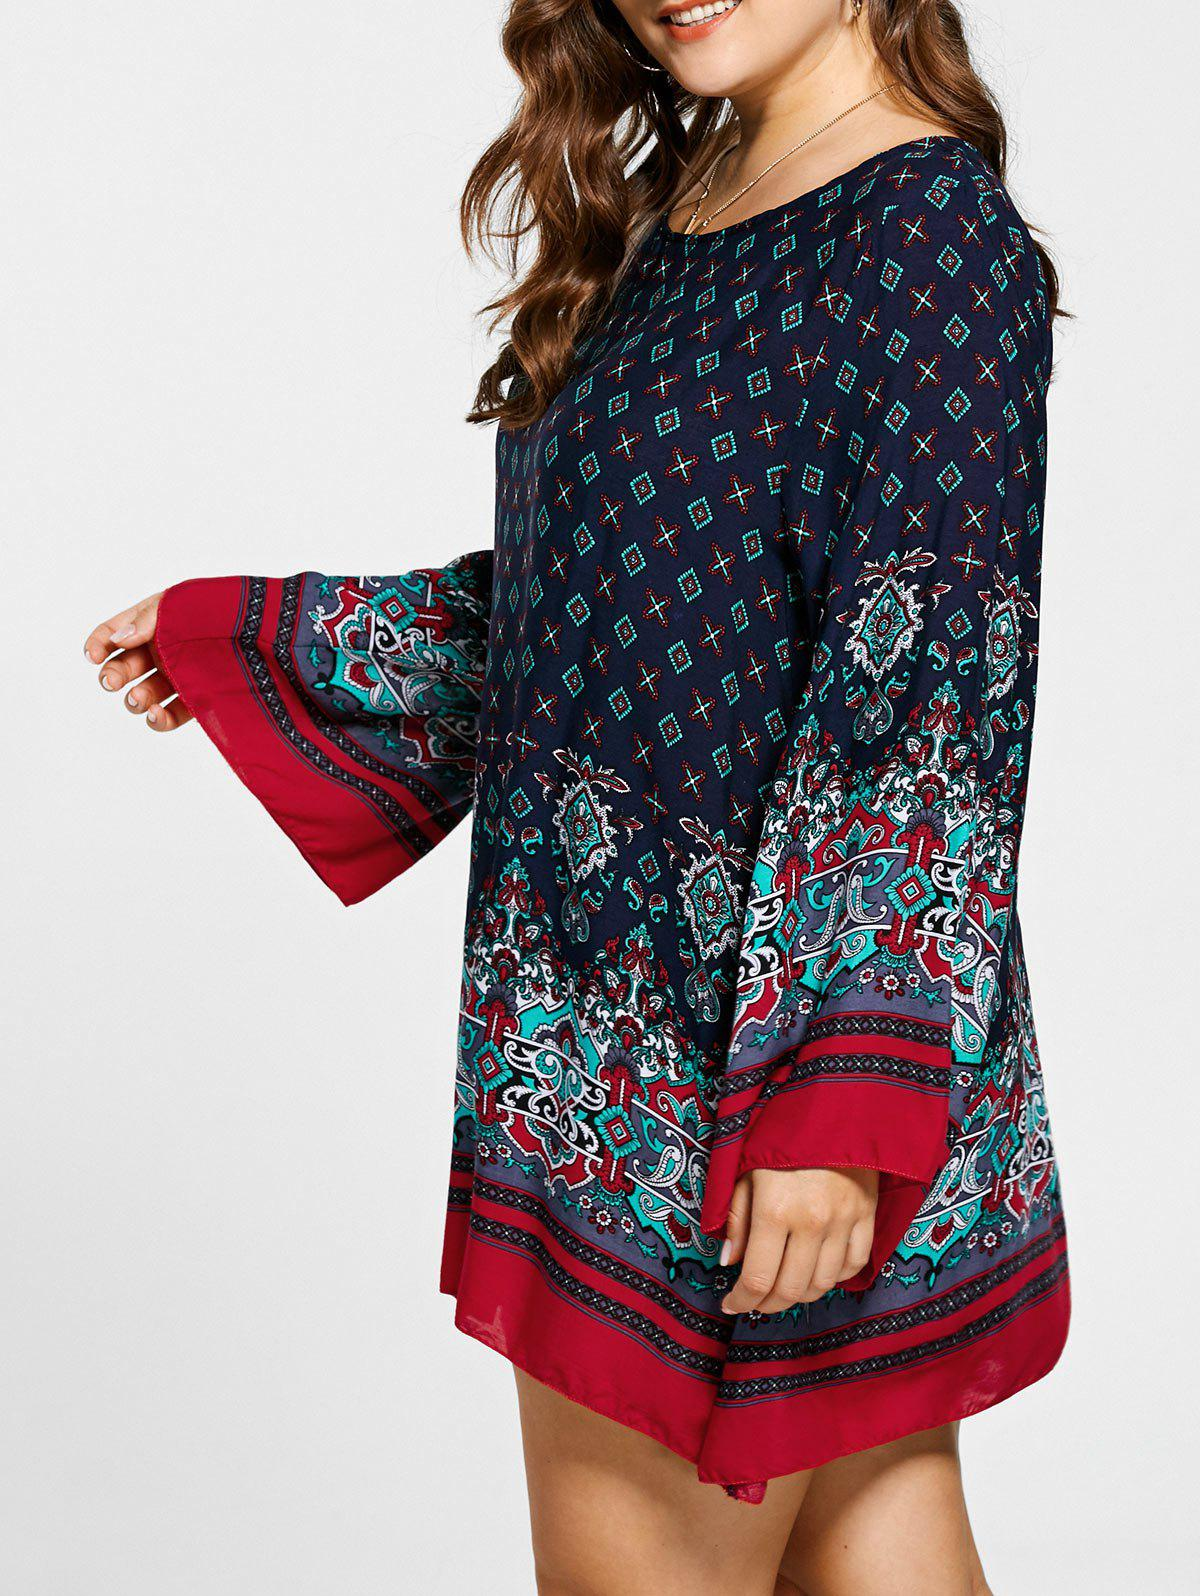 Plus Size Bell Sleeve Mini Bohemian DresWOMEN<br><br>Size: 5XL; Color: CERULEAN; Style: Bohemian; Material: Rayon; Silhouette: Straight; Dresses Length: Mini; Neckline: Scoop Neck; Sleeve Length: Long Sleeves; Pattern Type: Tribal Print; With Belt: No; Season: Fall,Spring,Summer; Weight: 0.3000kg; Package Contents: 1 x Dress;